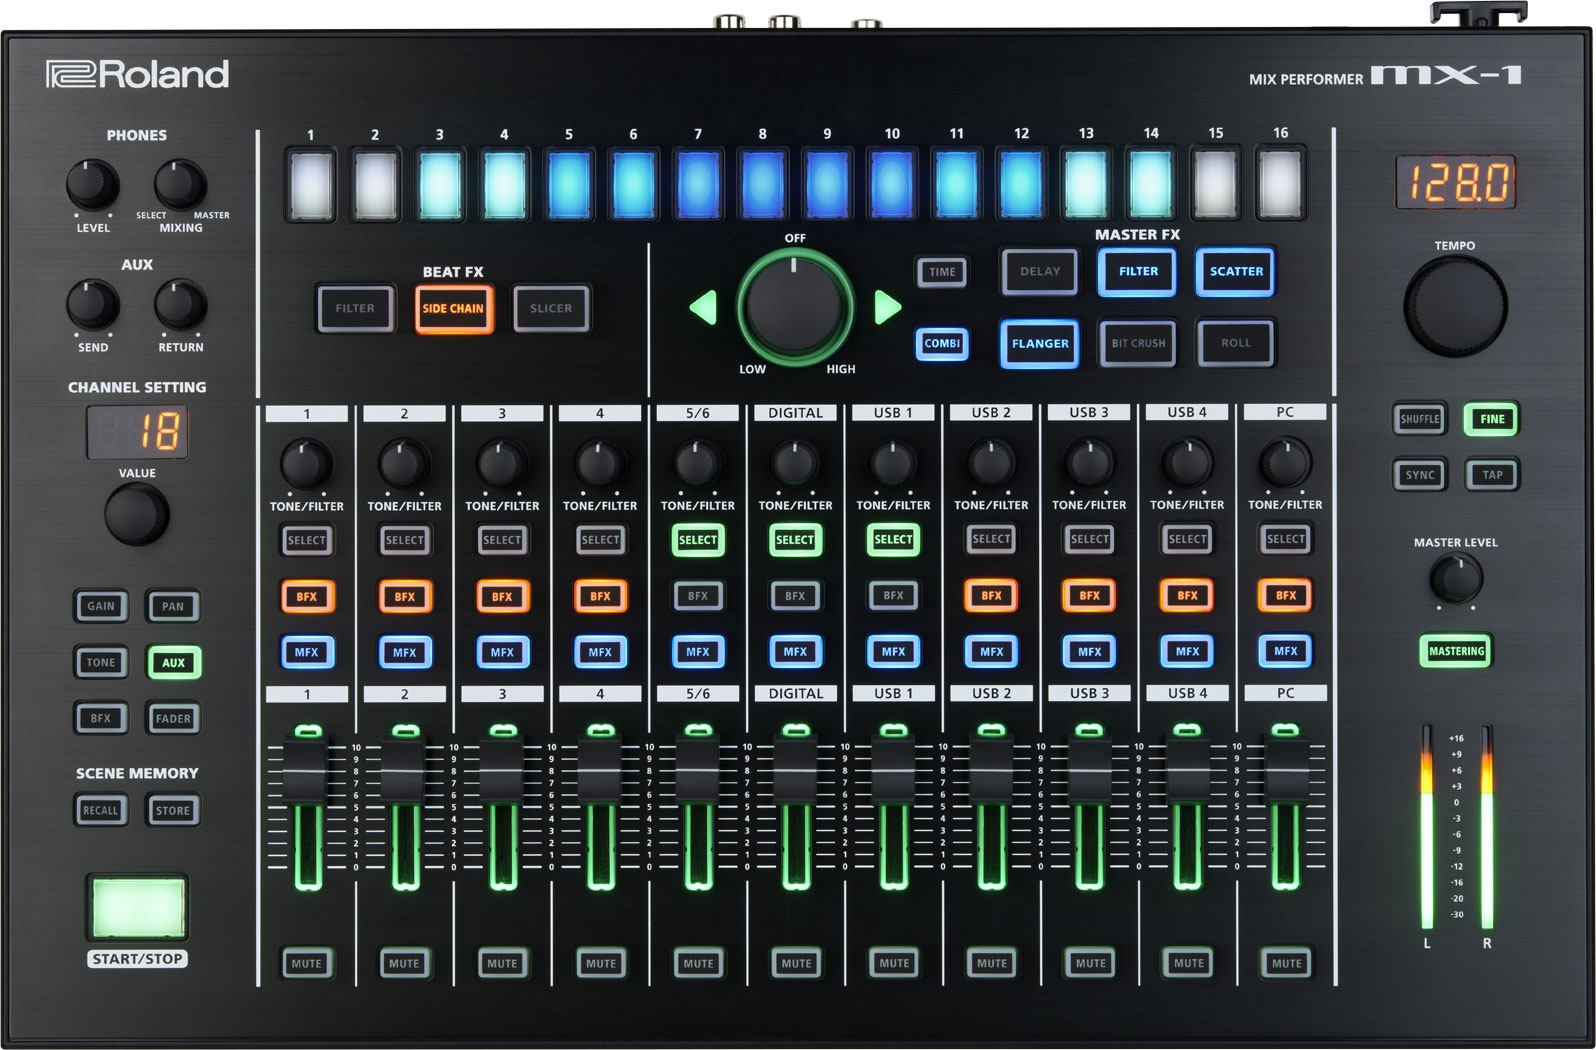 Aira MX-1 Mix Performer